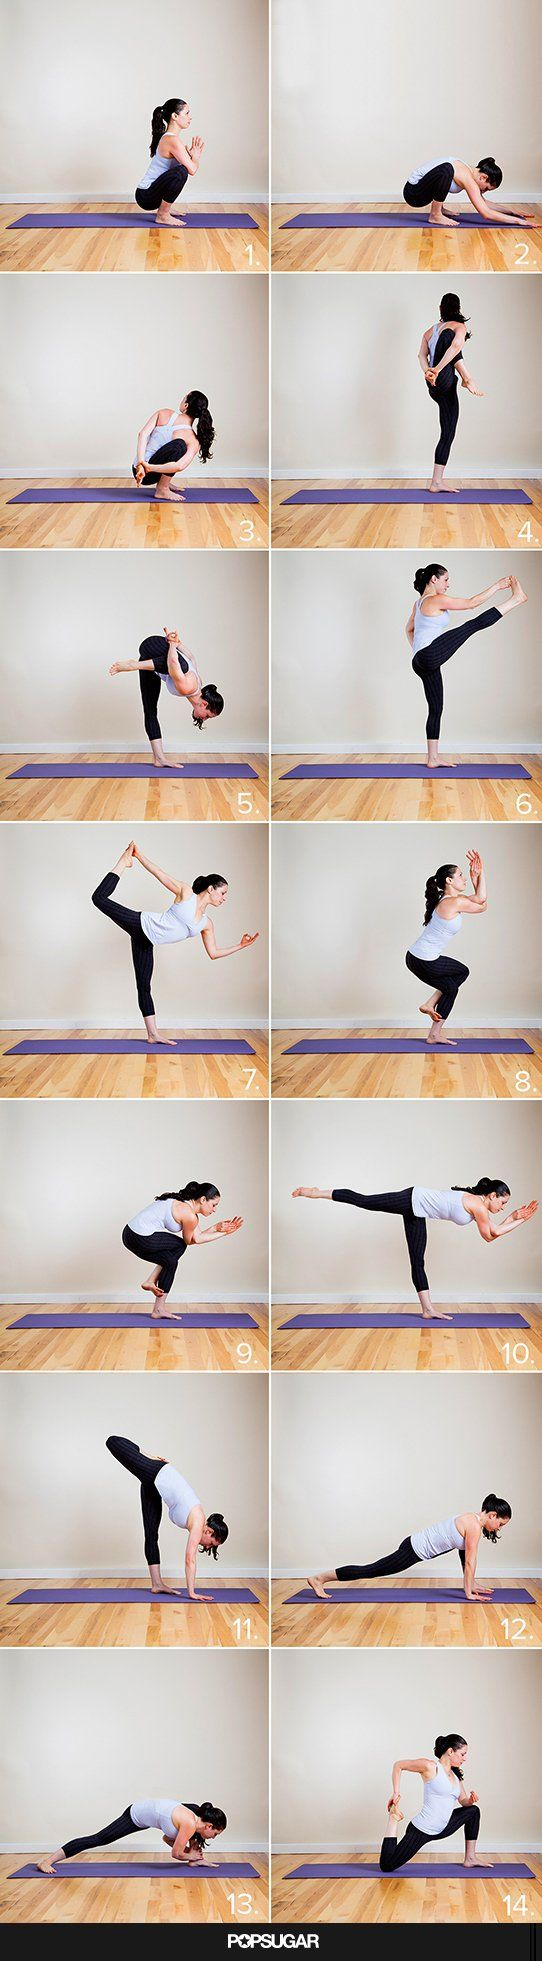 Holy Hot! Yoga Sequence to Do Your Tight Pants Justice.